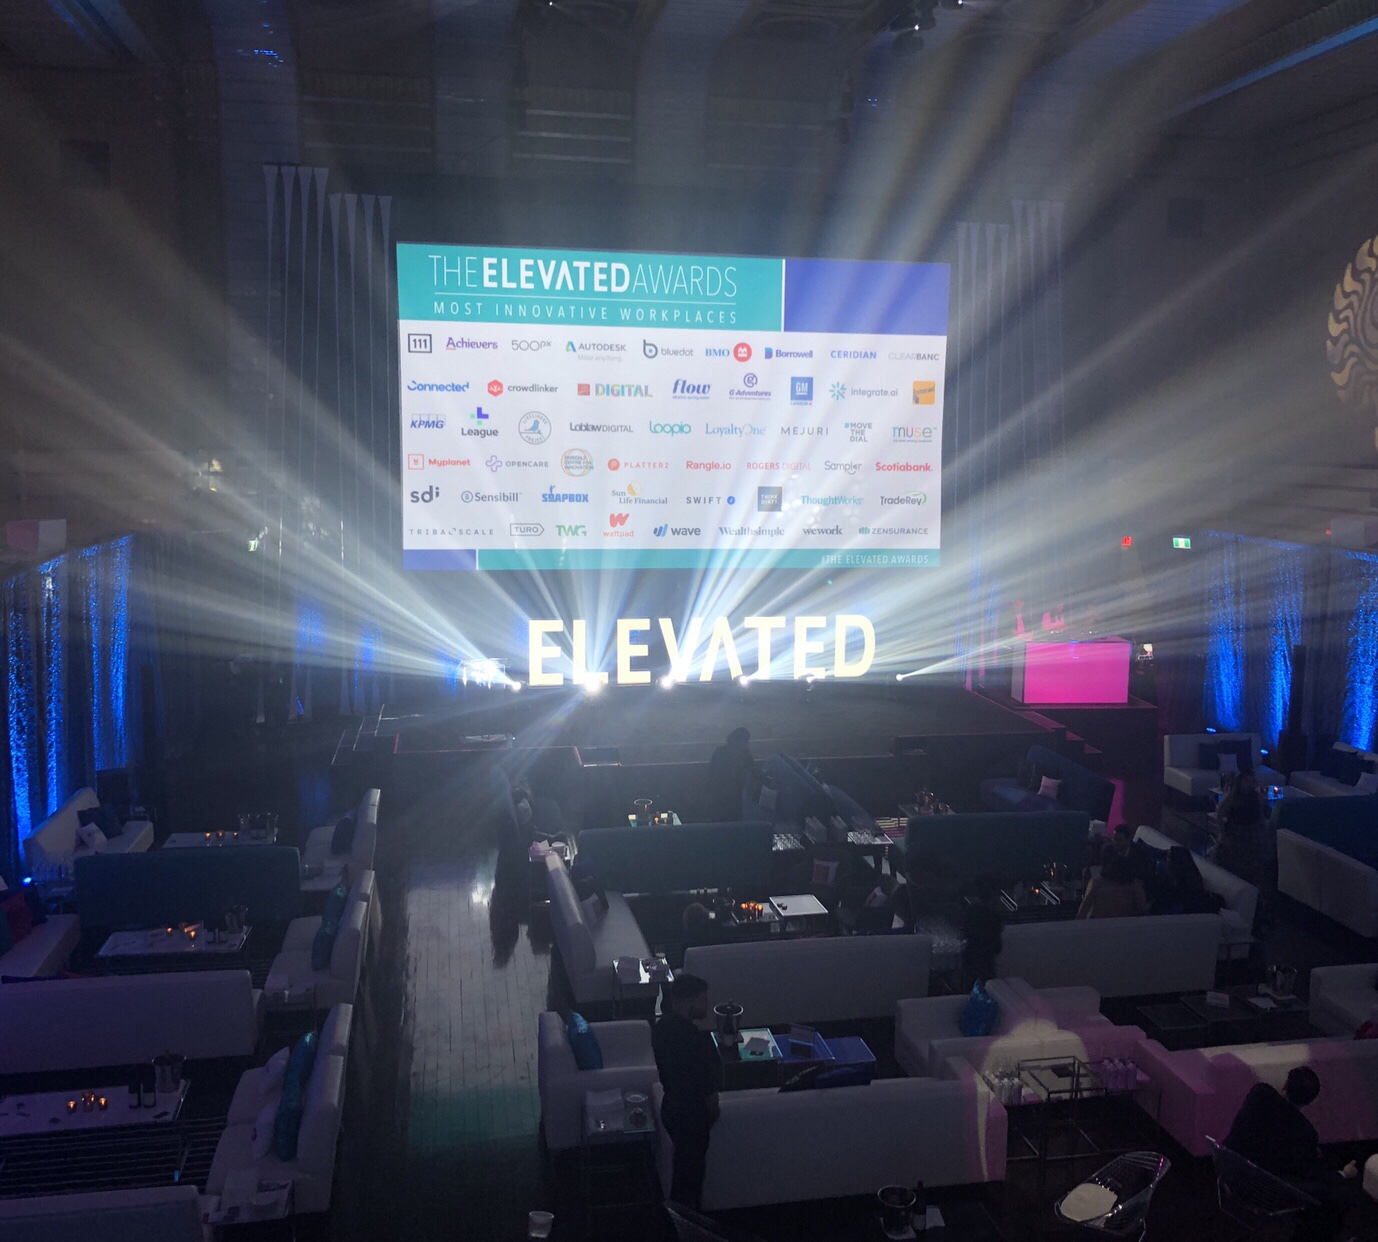 The Elevated Awards gala